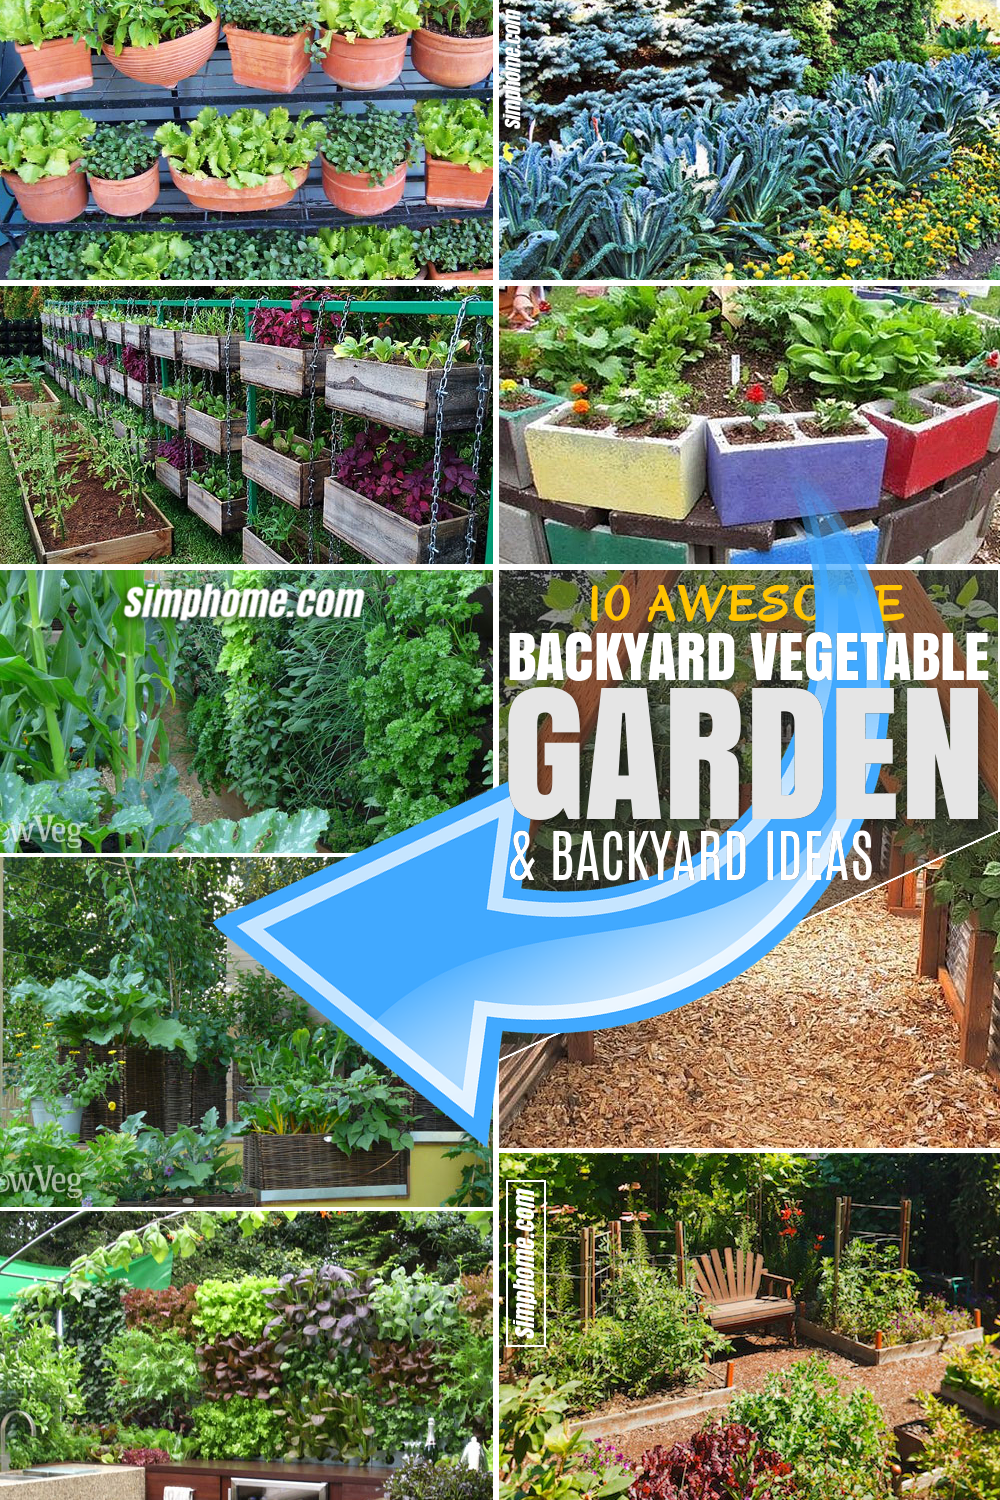 SIMPHOME.COM 10 Backyard Vegetable Garden Ideas FEATURED PINTEREST